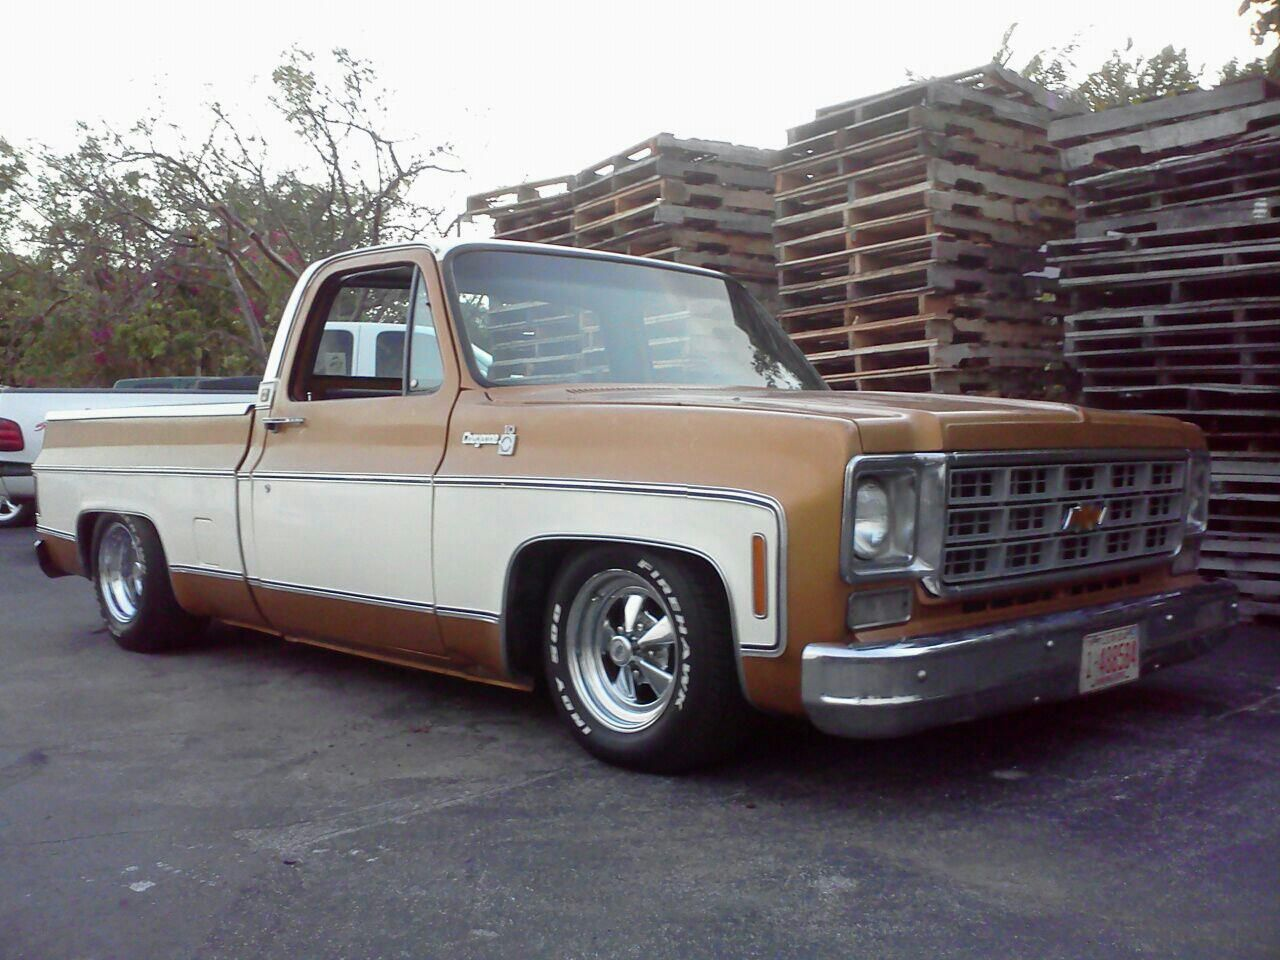 1 Chevrolet C10 Trucks And Parts For Sale And Info Chevy Trucks